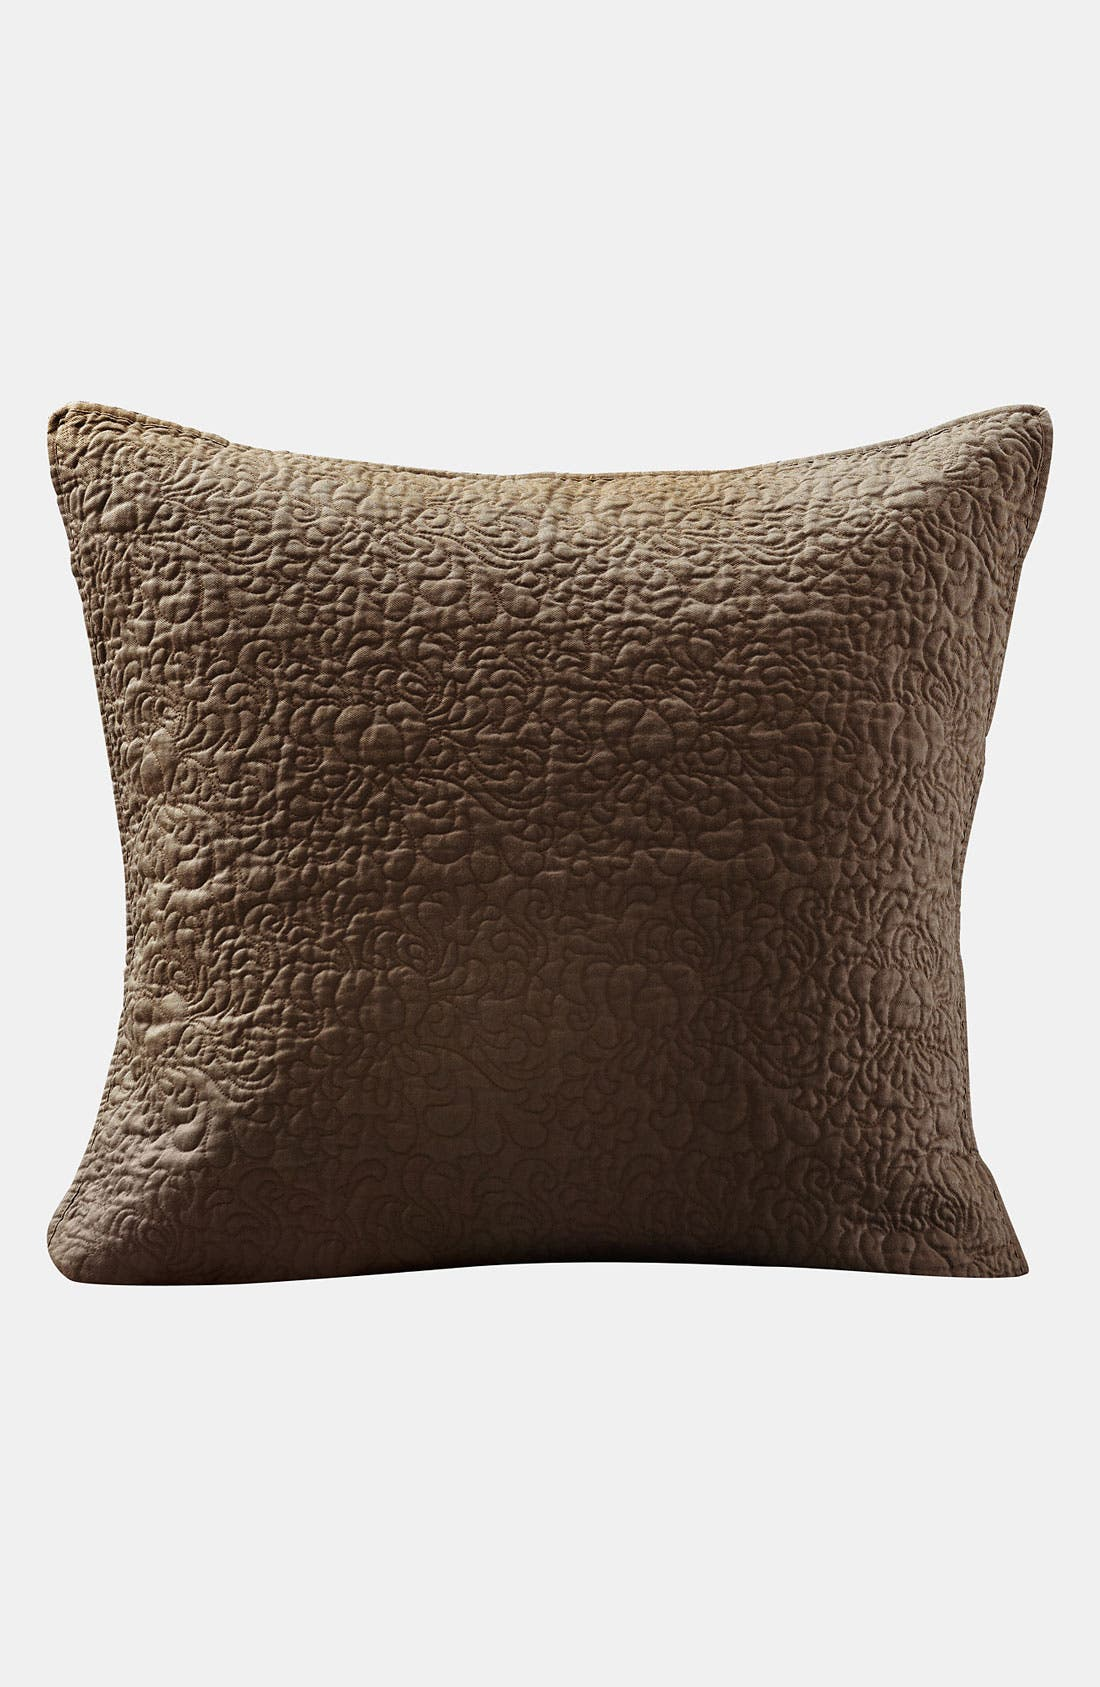 Main Image - Tracy Porter® For Poetic Wanderlust® 'Poetic Wanderlust' Quilted Euro Sham